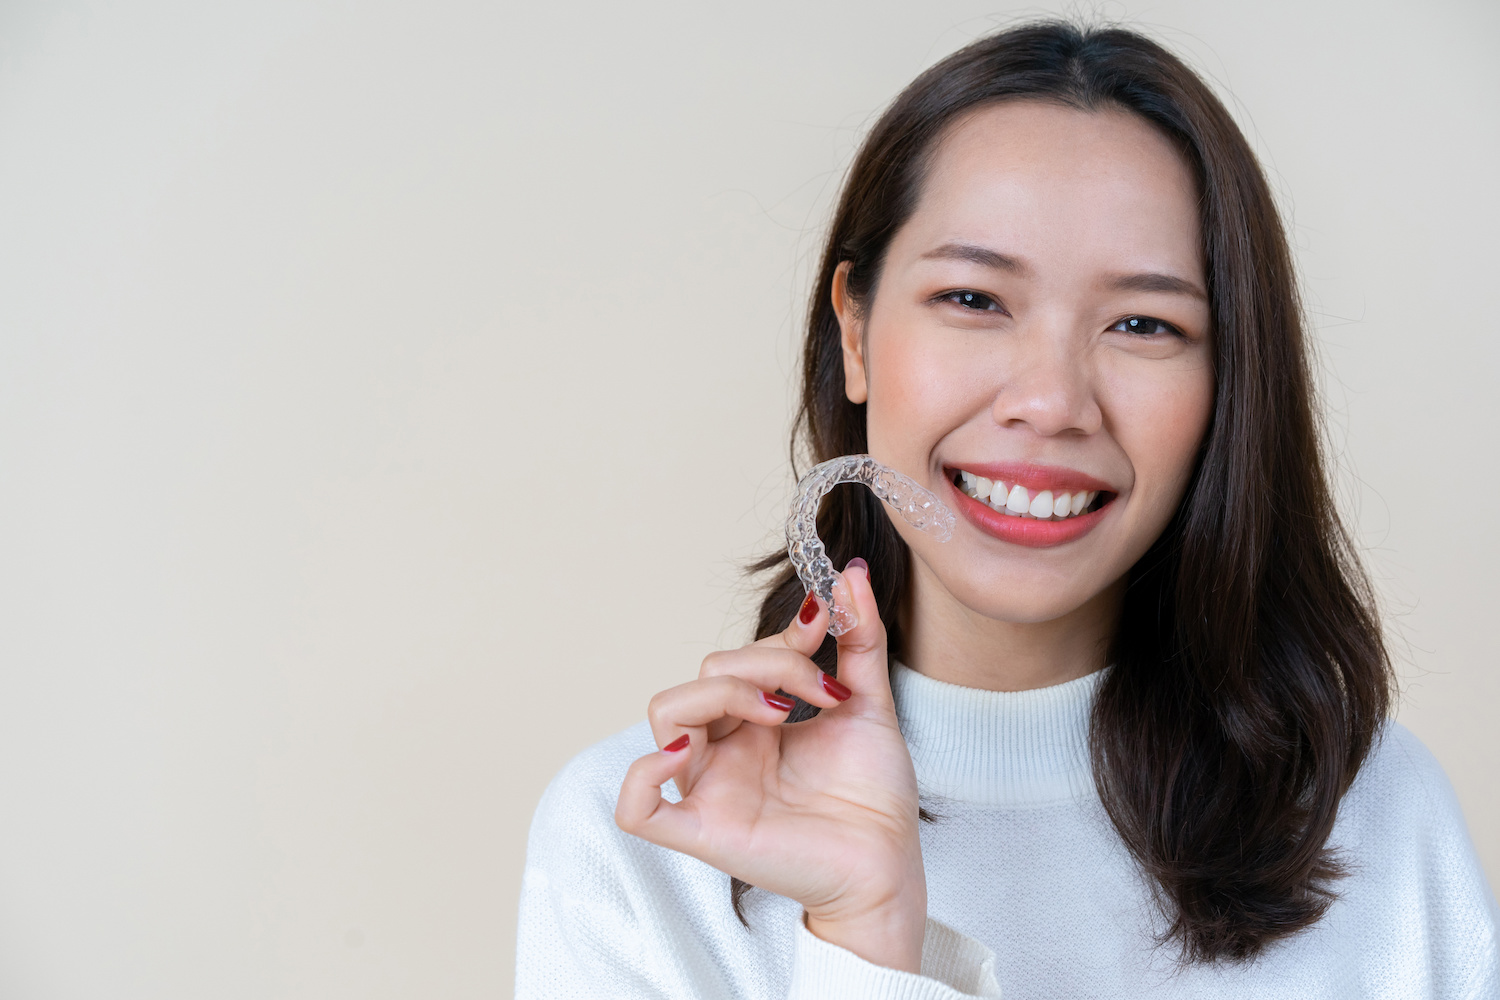 Comparing Invisalign vs Braces: Cost, Results and Treatment Time